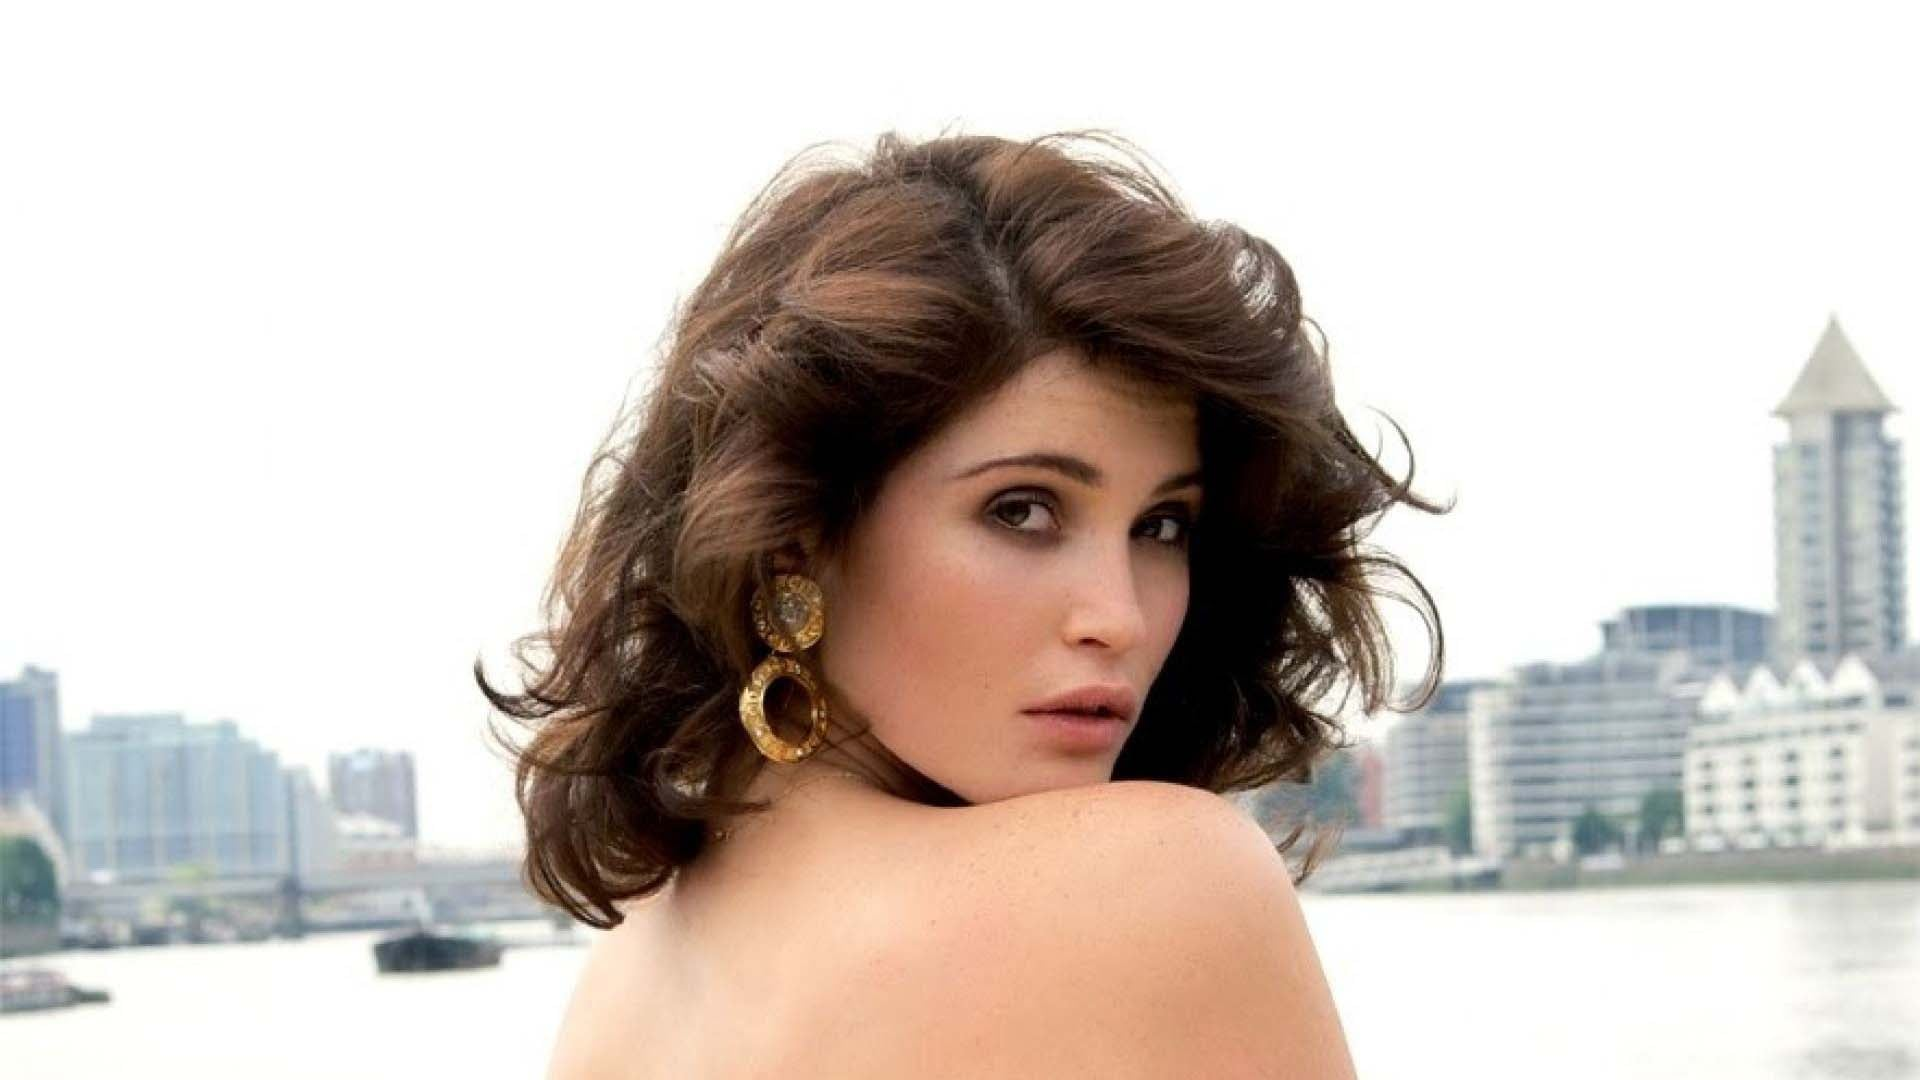 Santa Banta Car Wallpaper 29 Gemma Arterton Wallpapers Hd Download